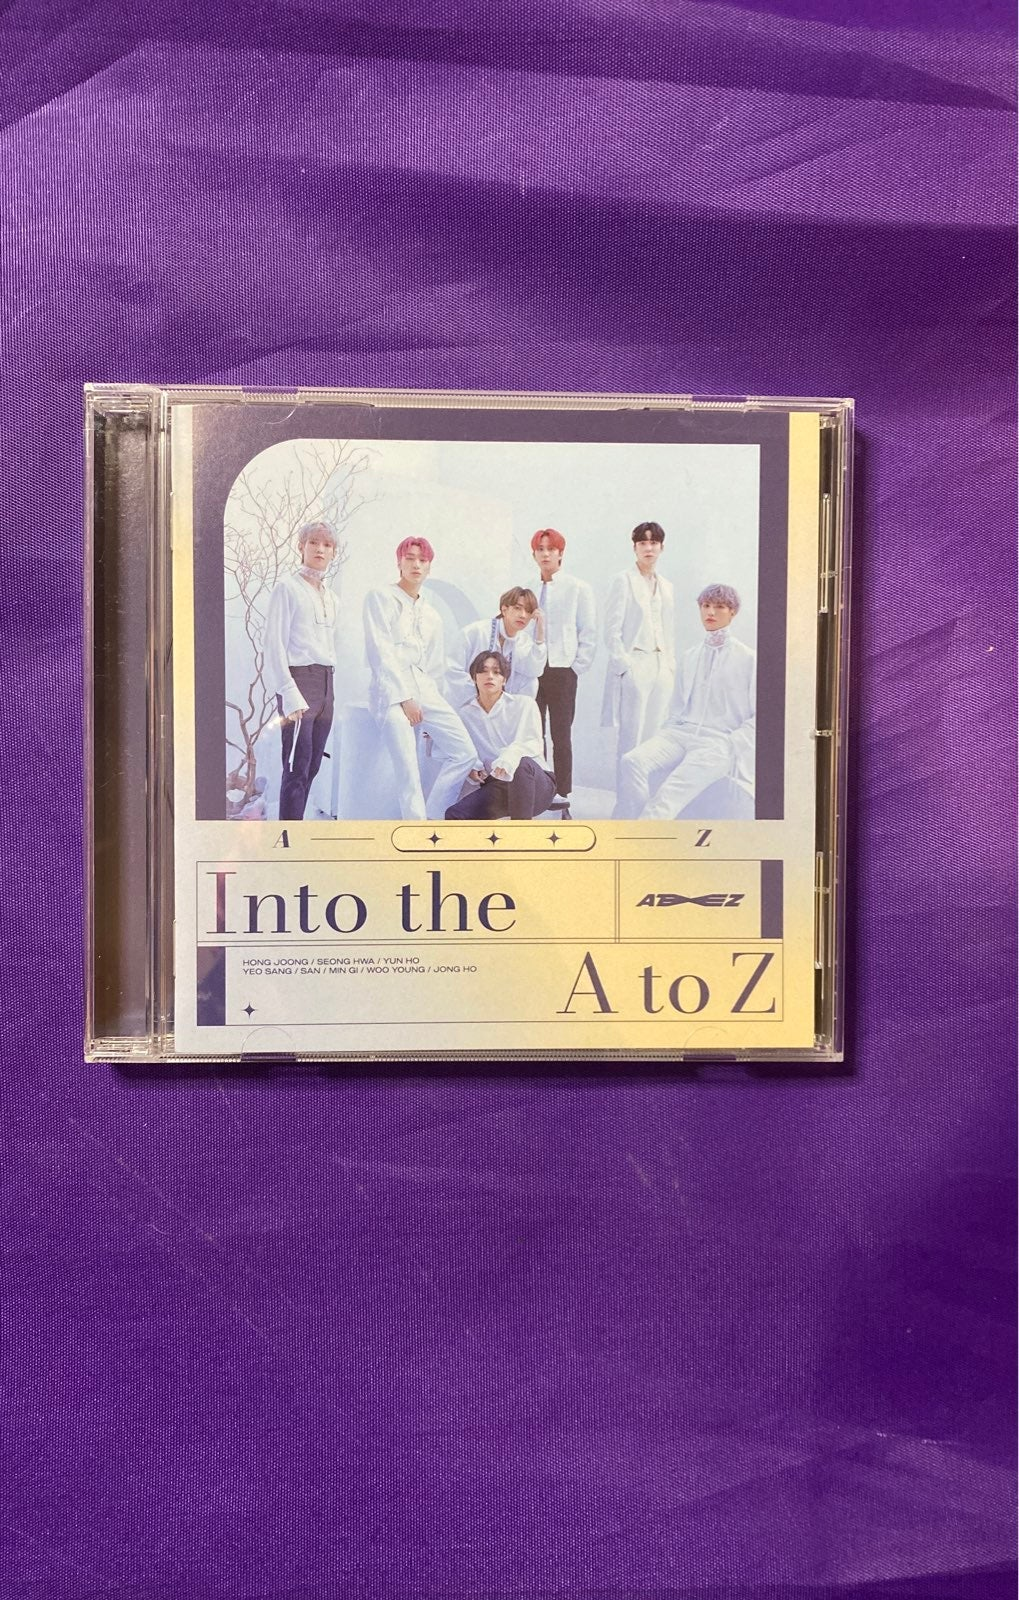 Ateez Into the A to Z Regular version